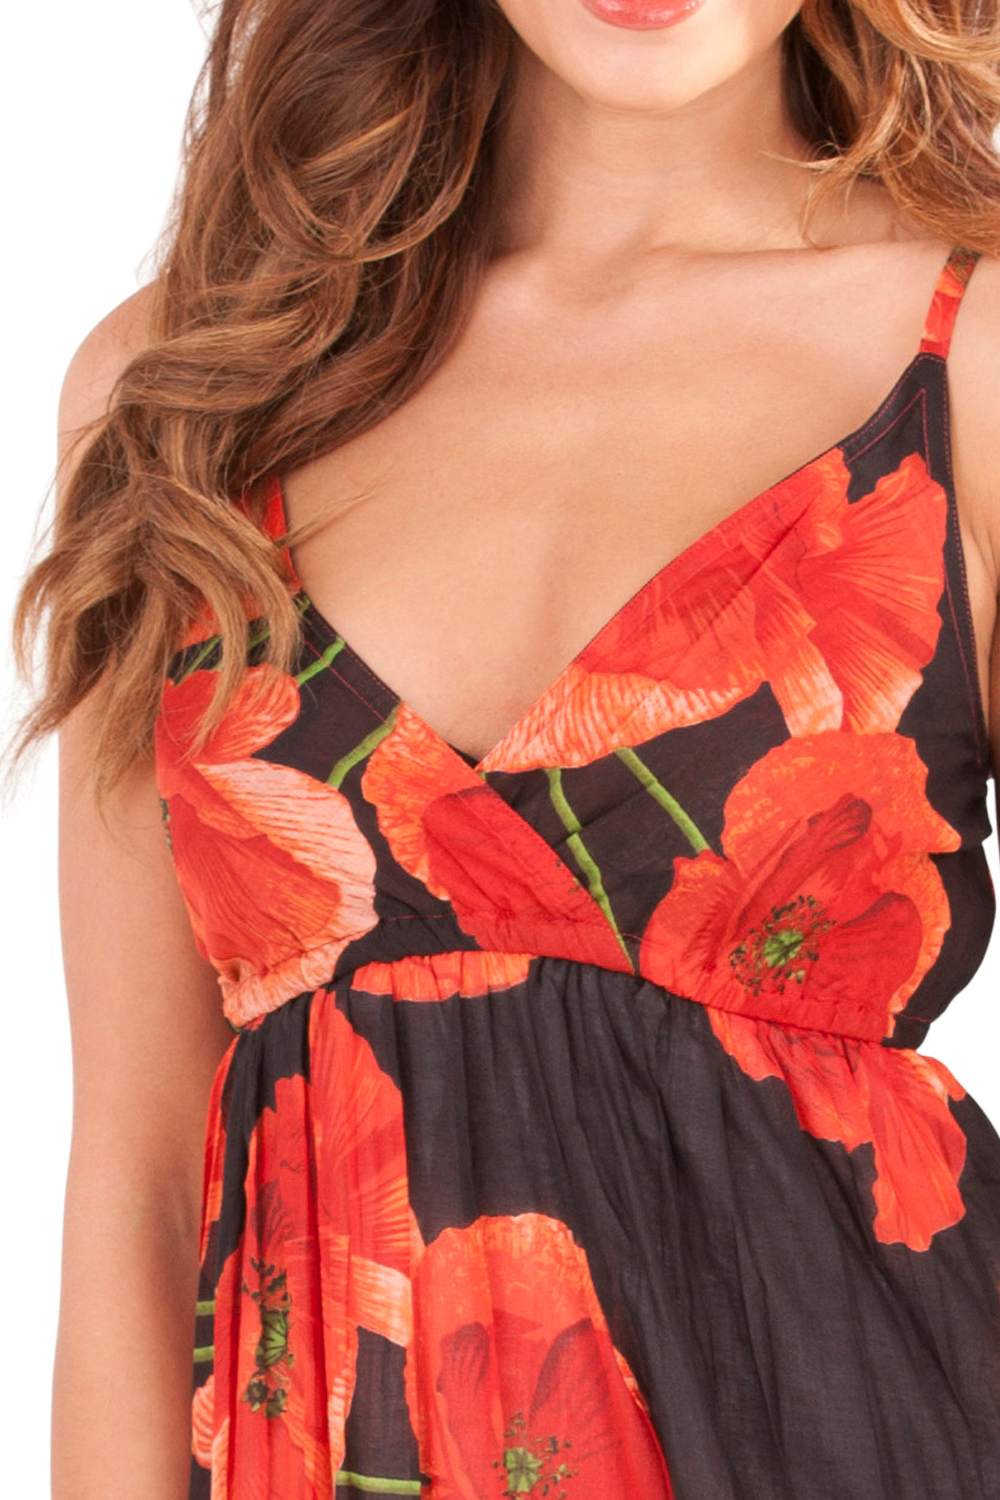 Pistachio-Womens-Crossover-Poppy-Knee-Length-Cotton-Midi-Summer-Evening-Dress thumbnail 4